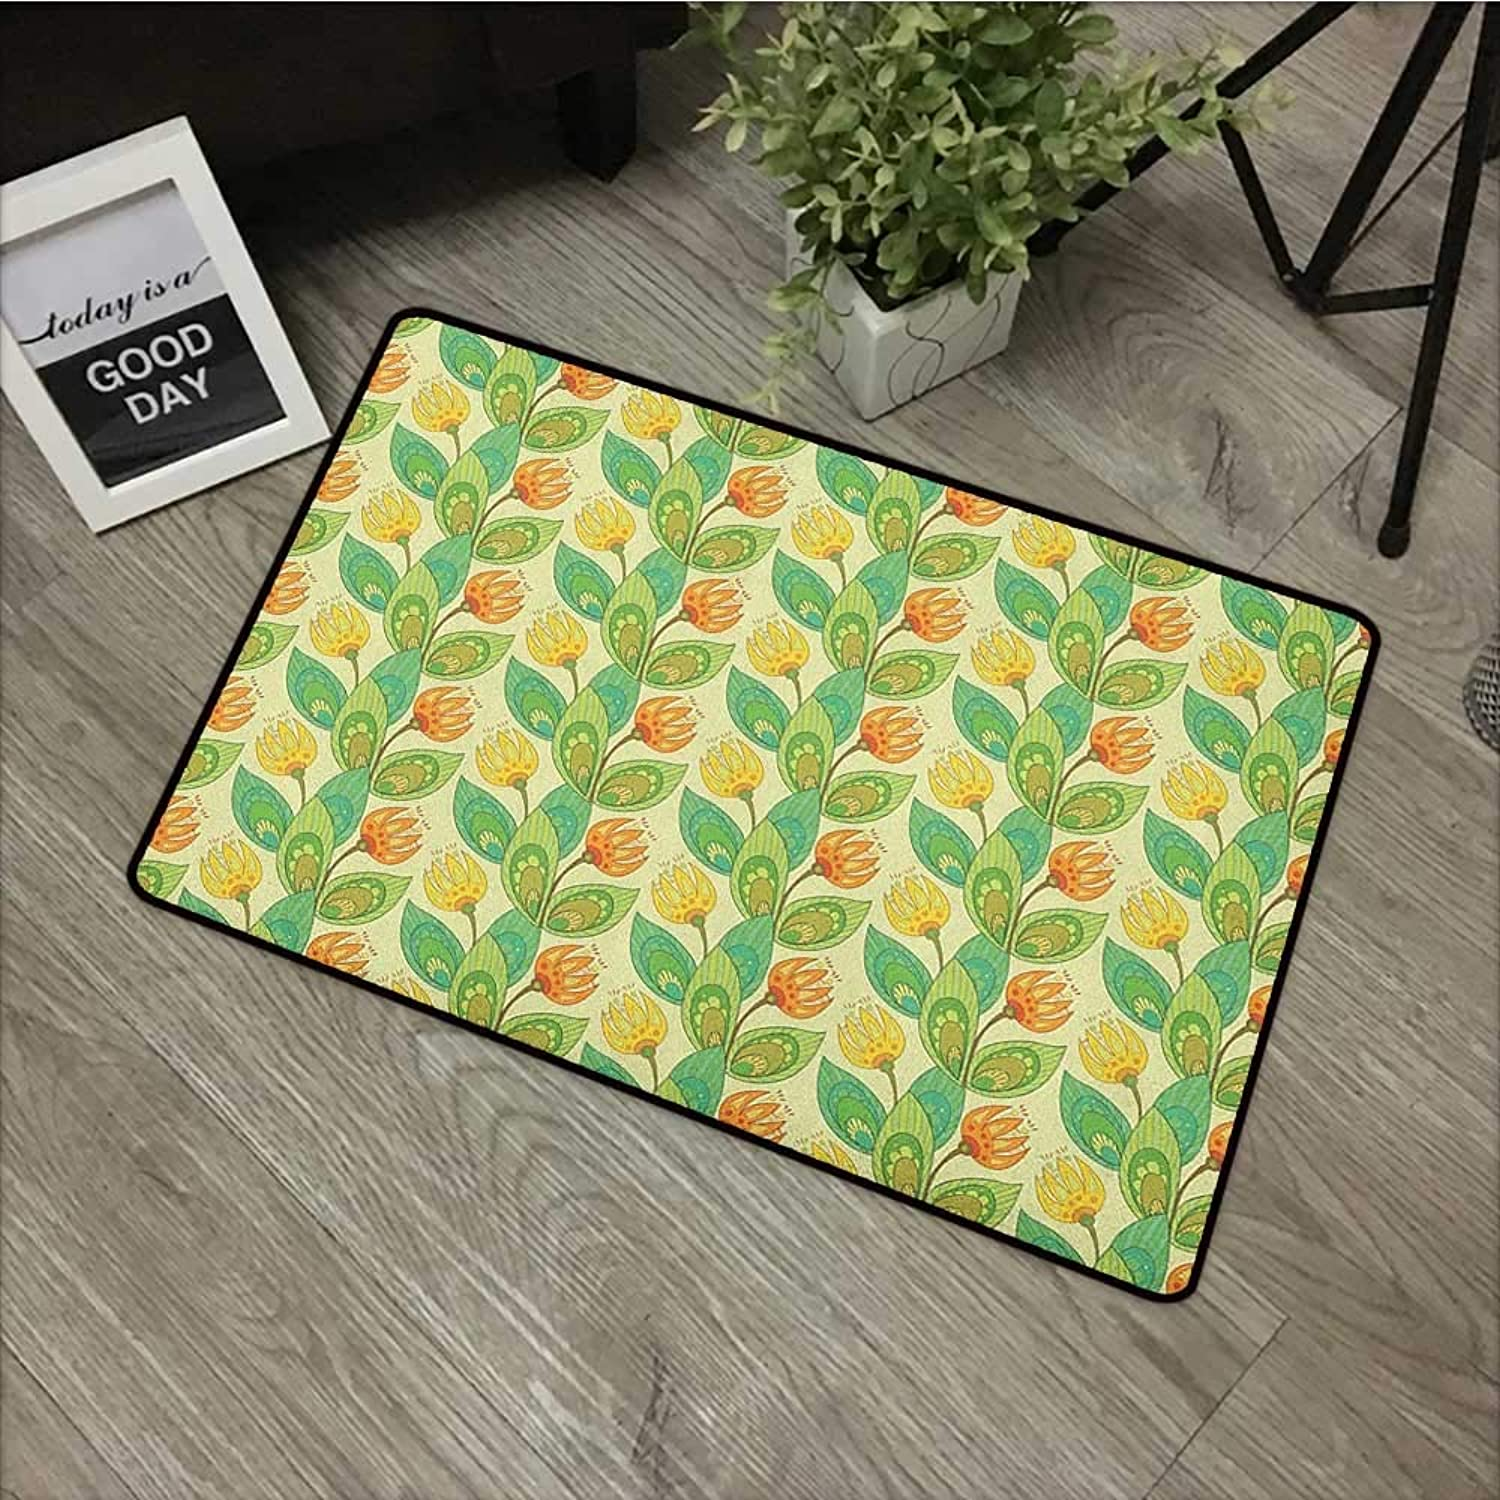 Restaurant mat W35 x L59 INCH Flower,Pastel colord Fresh Blooming Foliage Design with Hand Drawn Flourishing Branches, Multicolor Easy to Clean, no Deformation, no Fading Non-Slip Door Mat Carpet